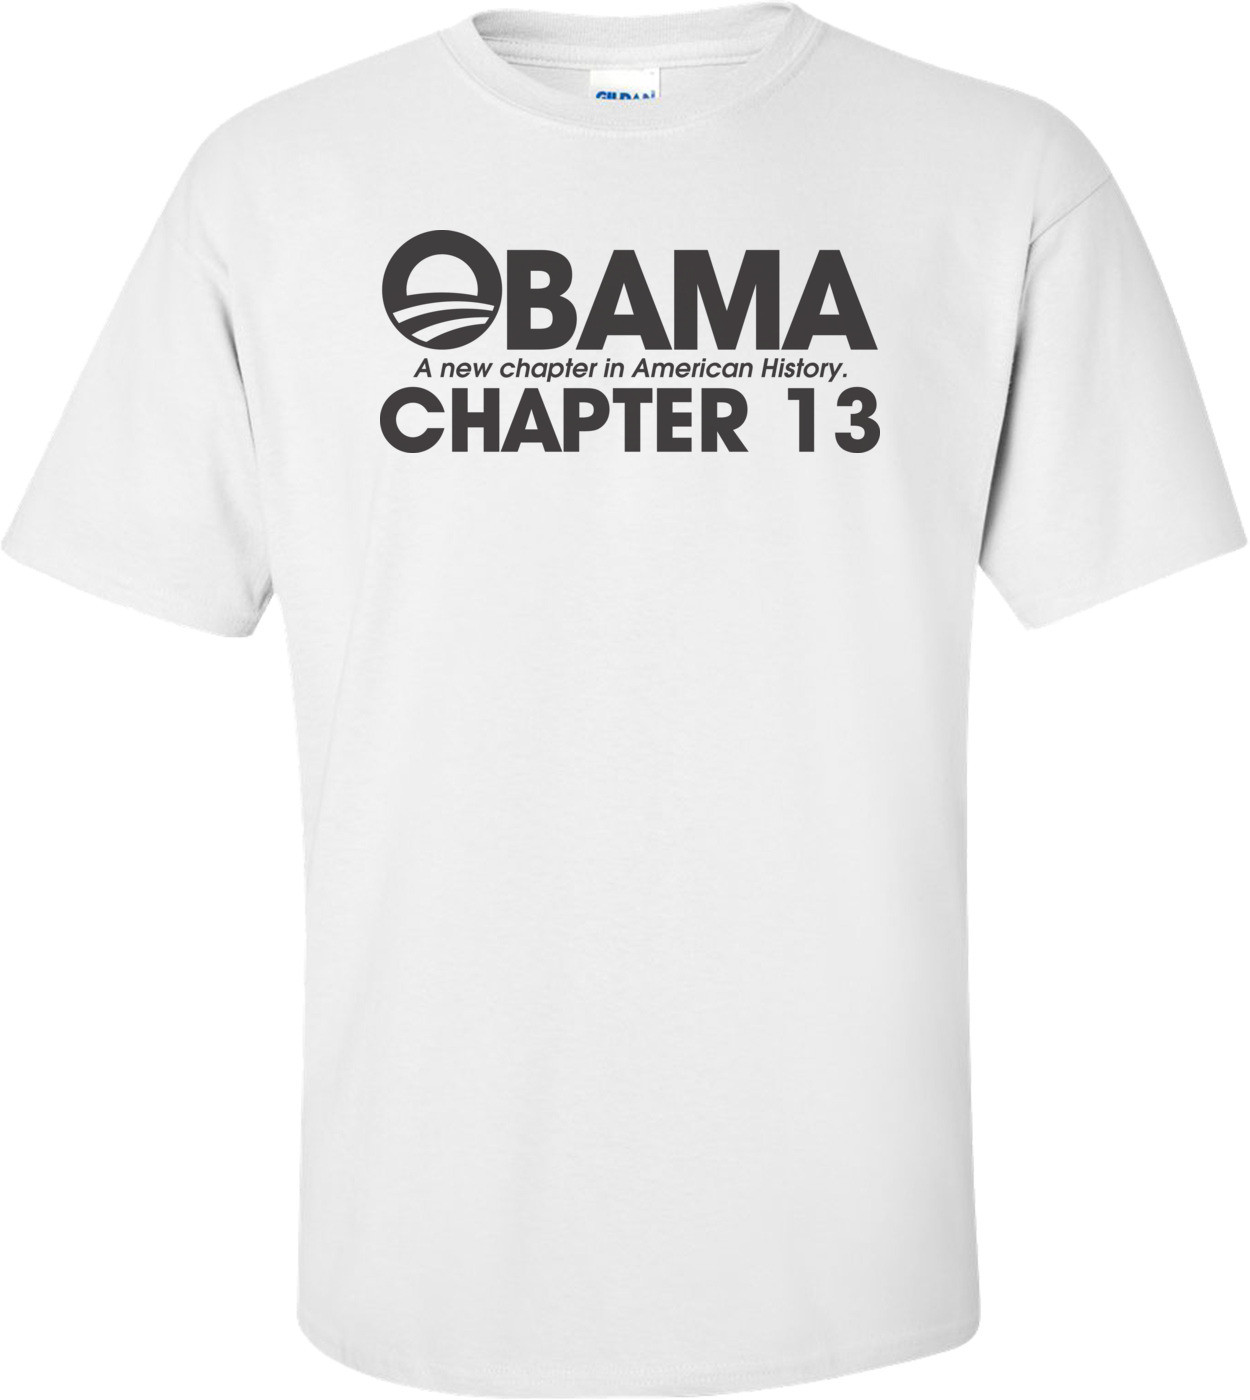 Obama A New Chapter In American History Chapter 13 Anti Obama